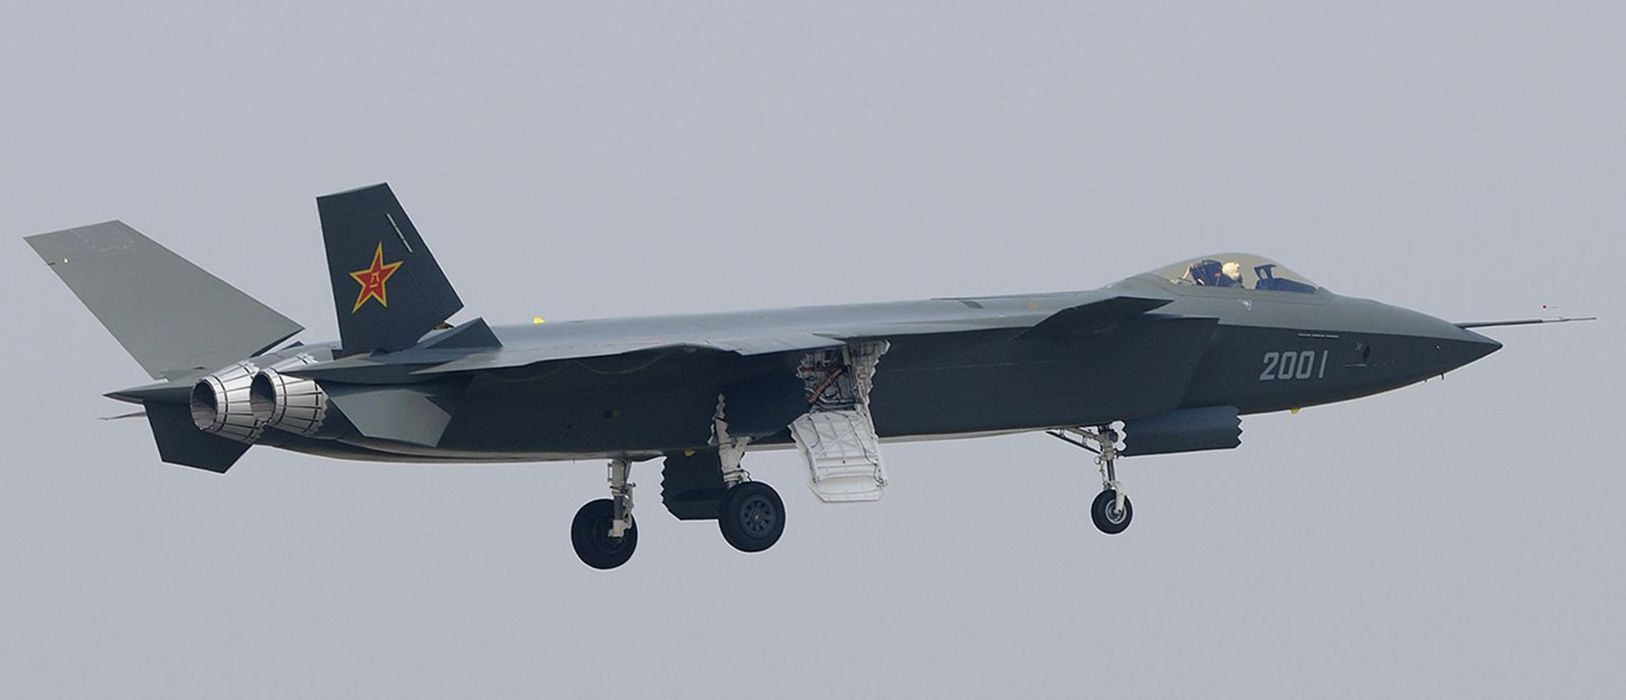 Chinese J-20 Mighty Dragon Fifth Generation Stealth Fighter Aircraft Chengdu Vehicle Military Chinese People's Liberation Army Air Force (PLAAF) (4) wallpaper